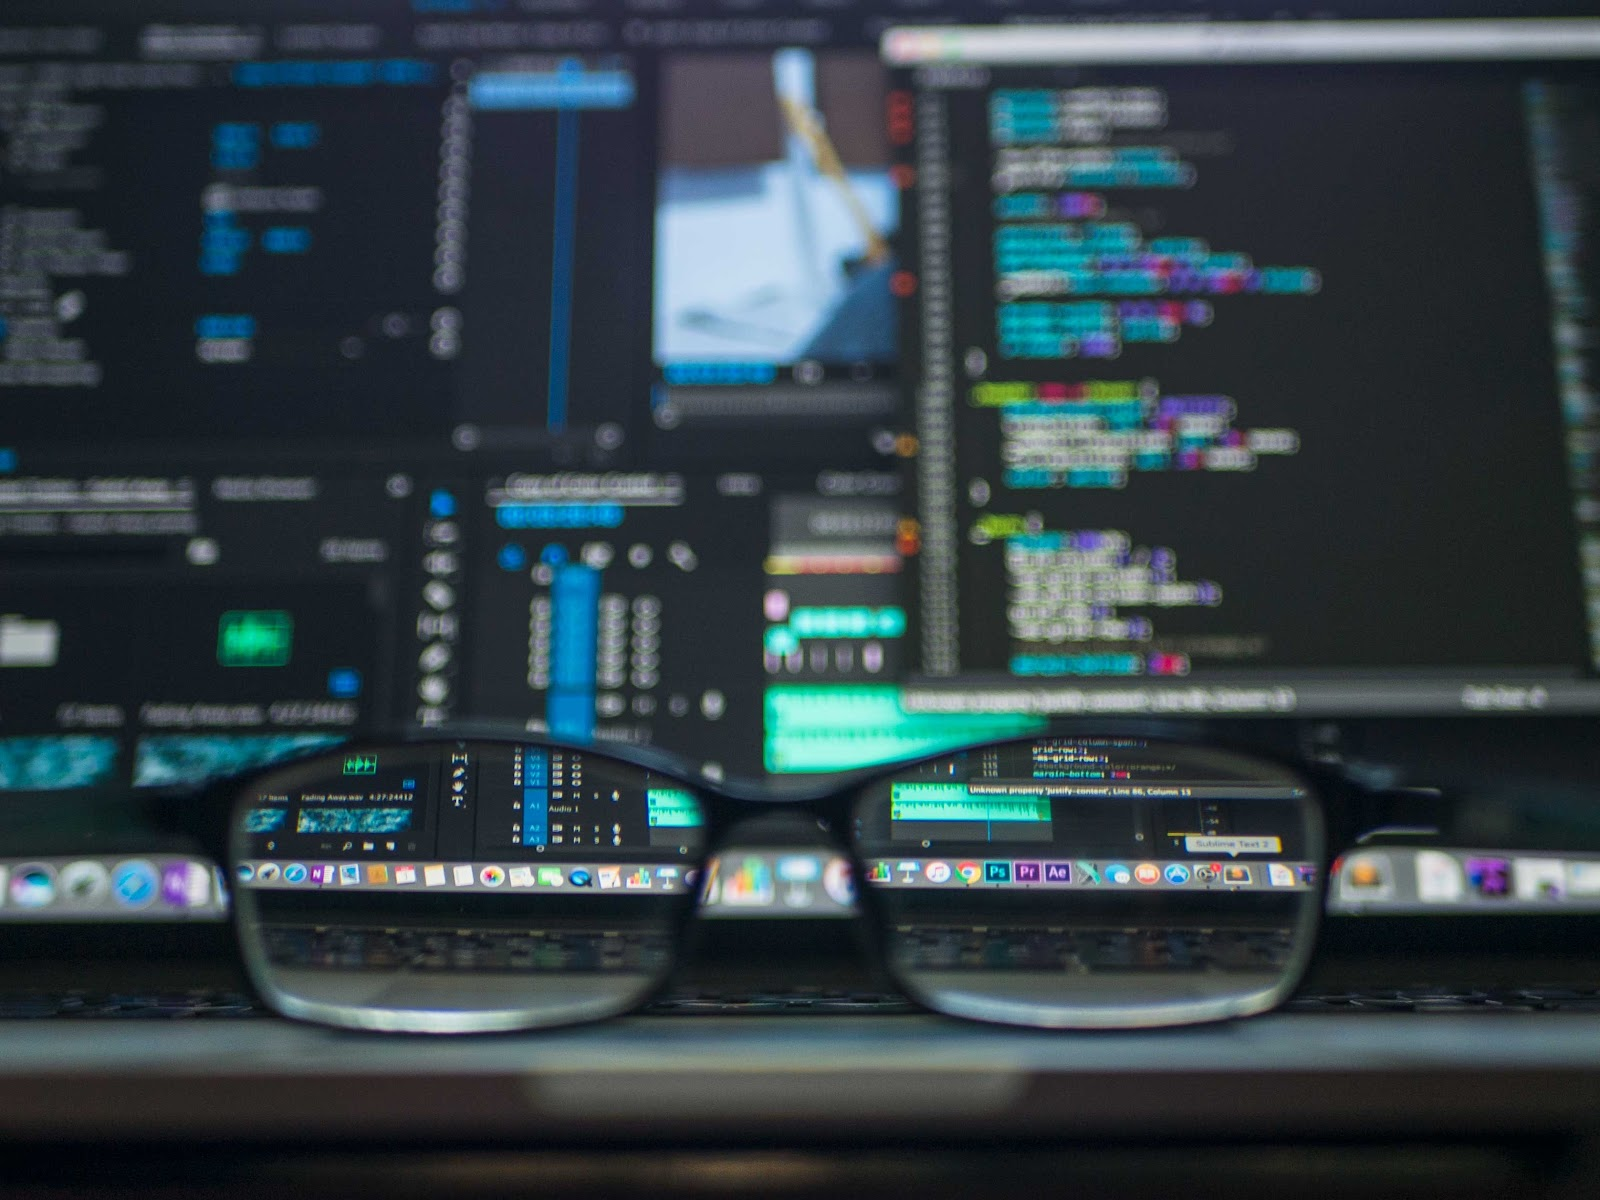 Recent data breaches: Glasses sat on desk in front of a computer monitor showing code.